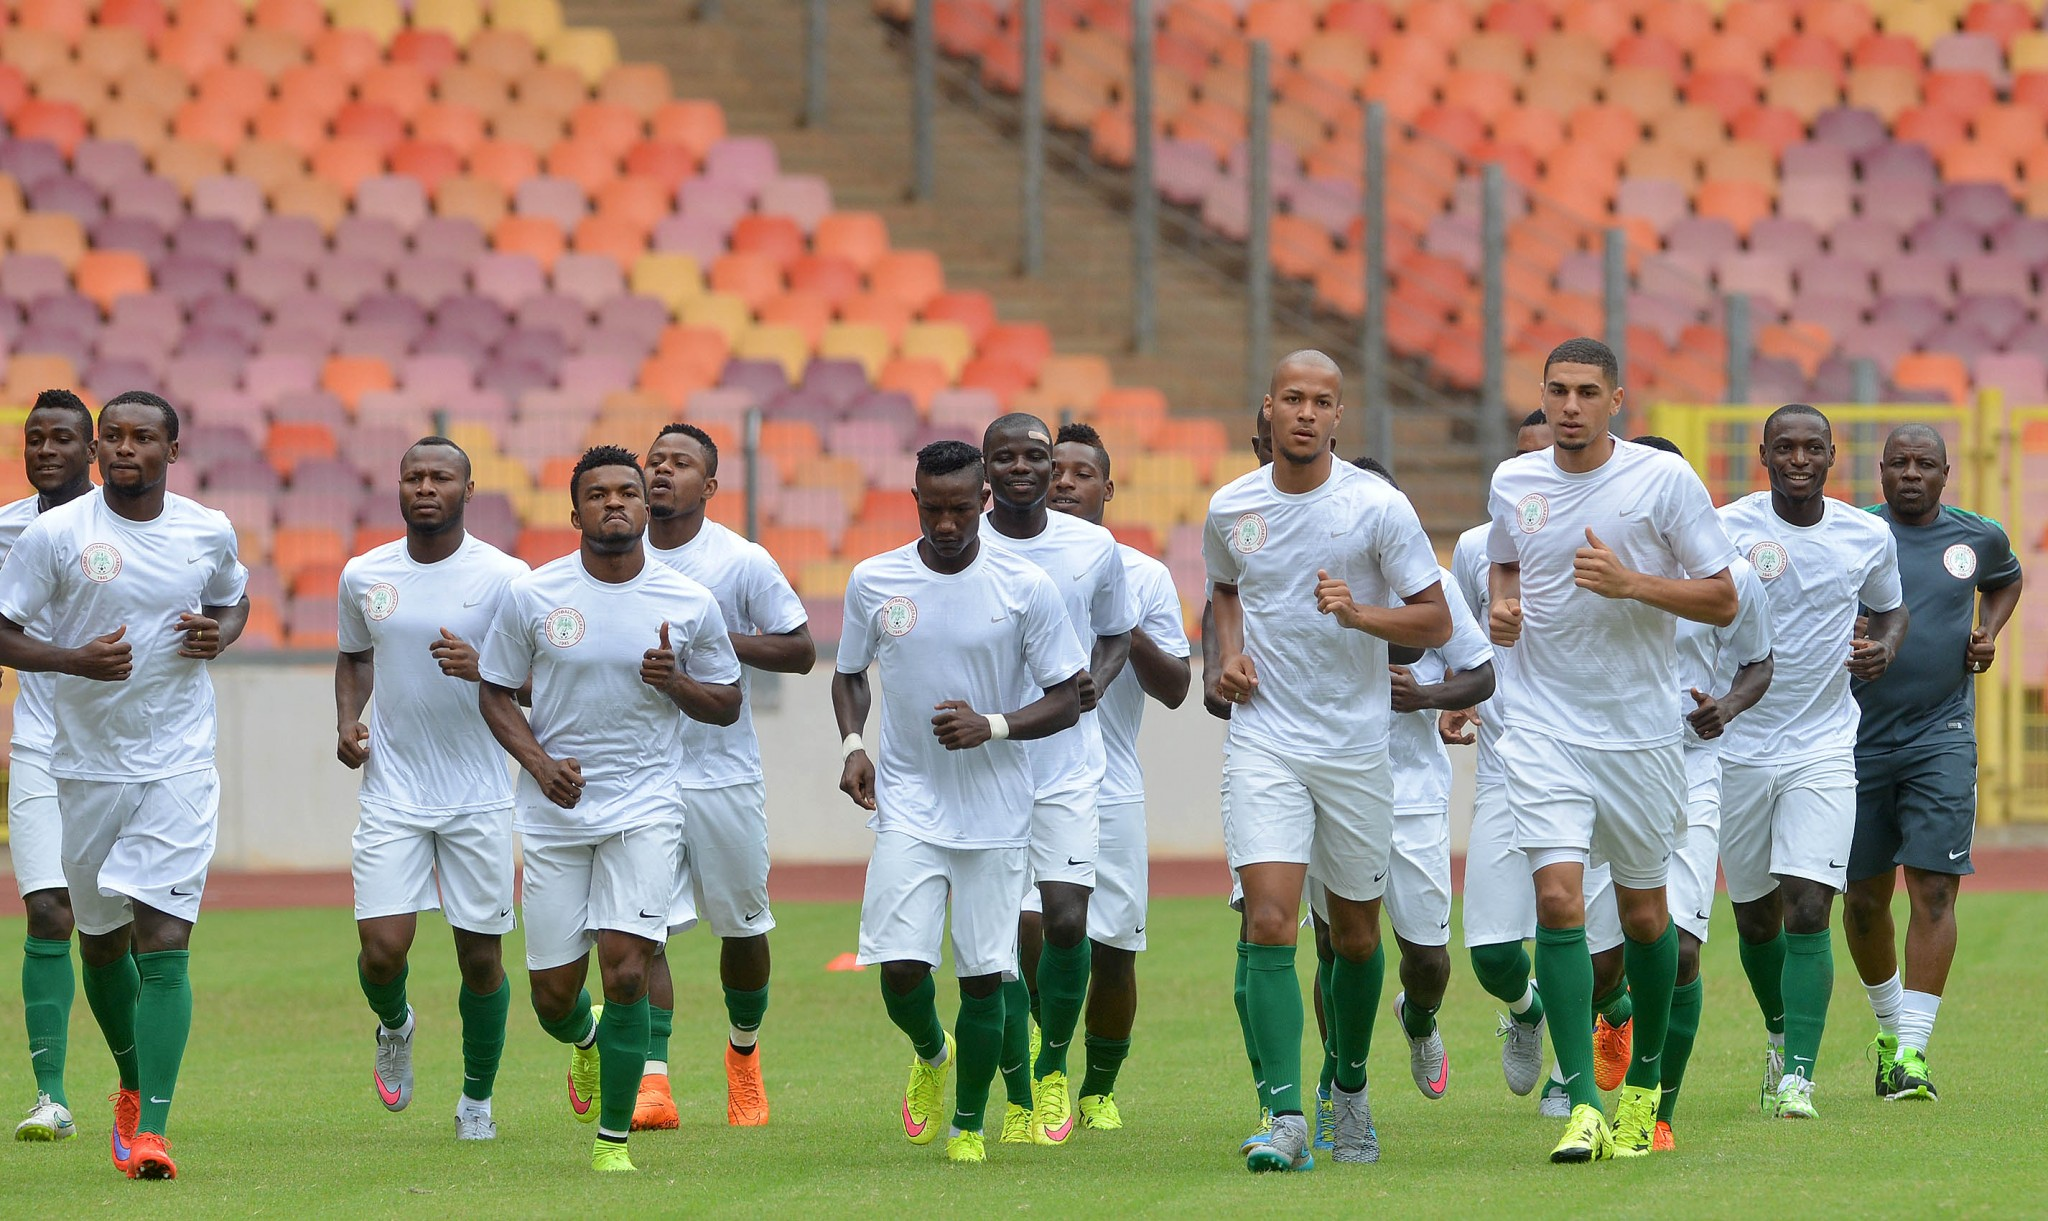 Echiejile Eager For Swaziland Vs Super Eagles Action